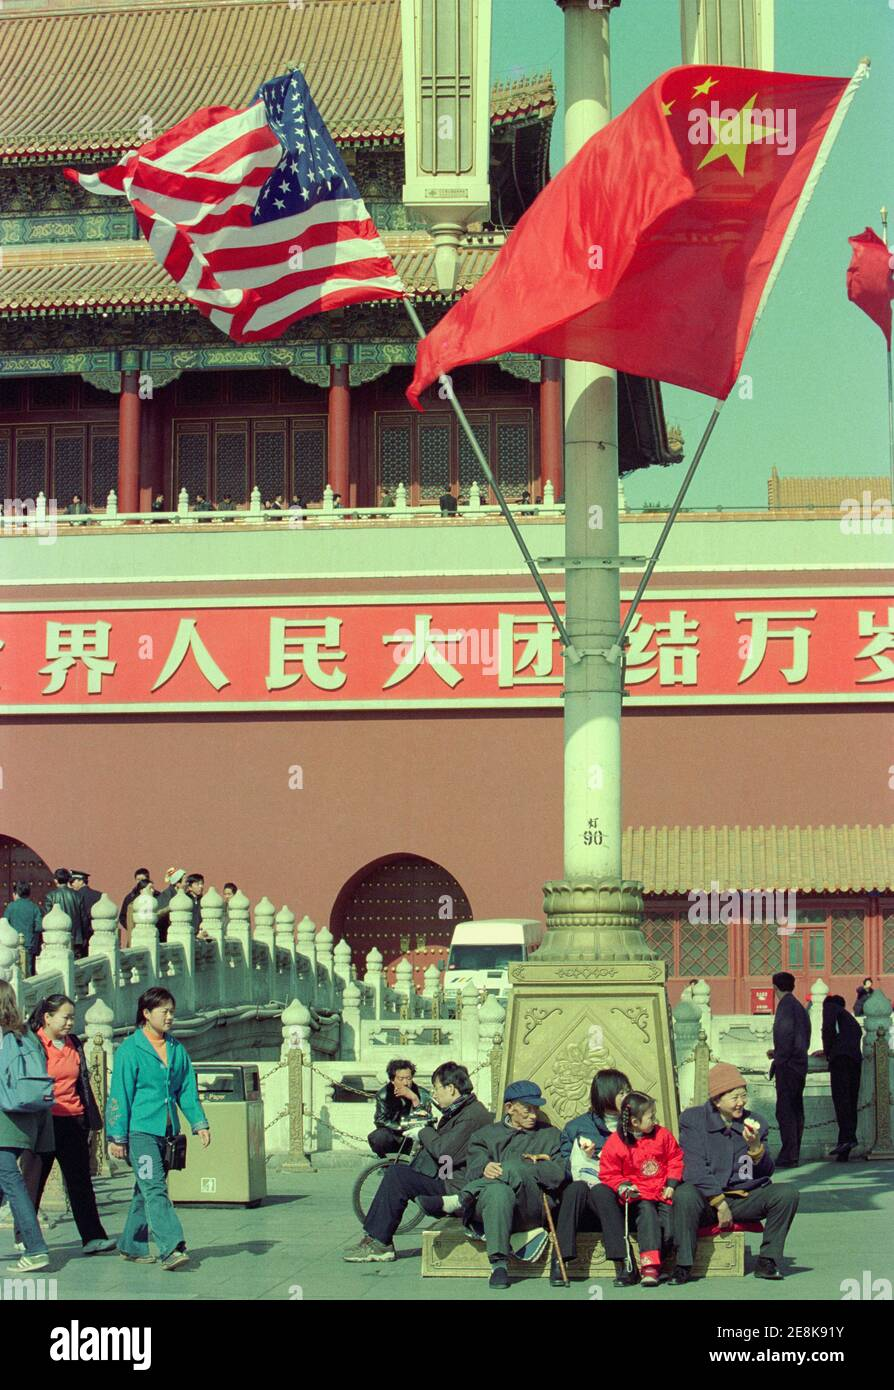 The Chinese and American flags fly over the area around Tiananmen Square during the days when American President George W. Bush visits China. 2002 Stock Photo